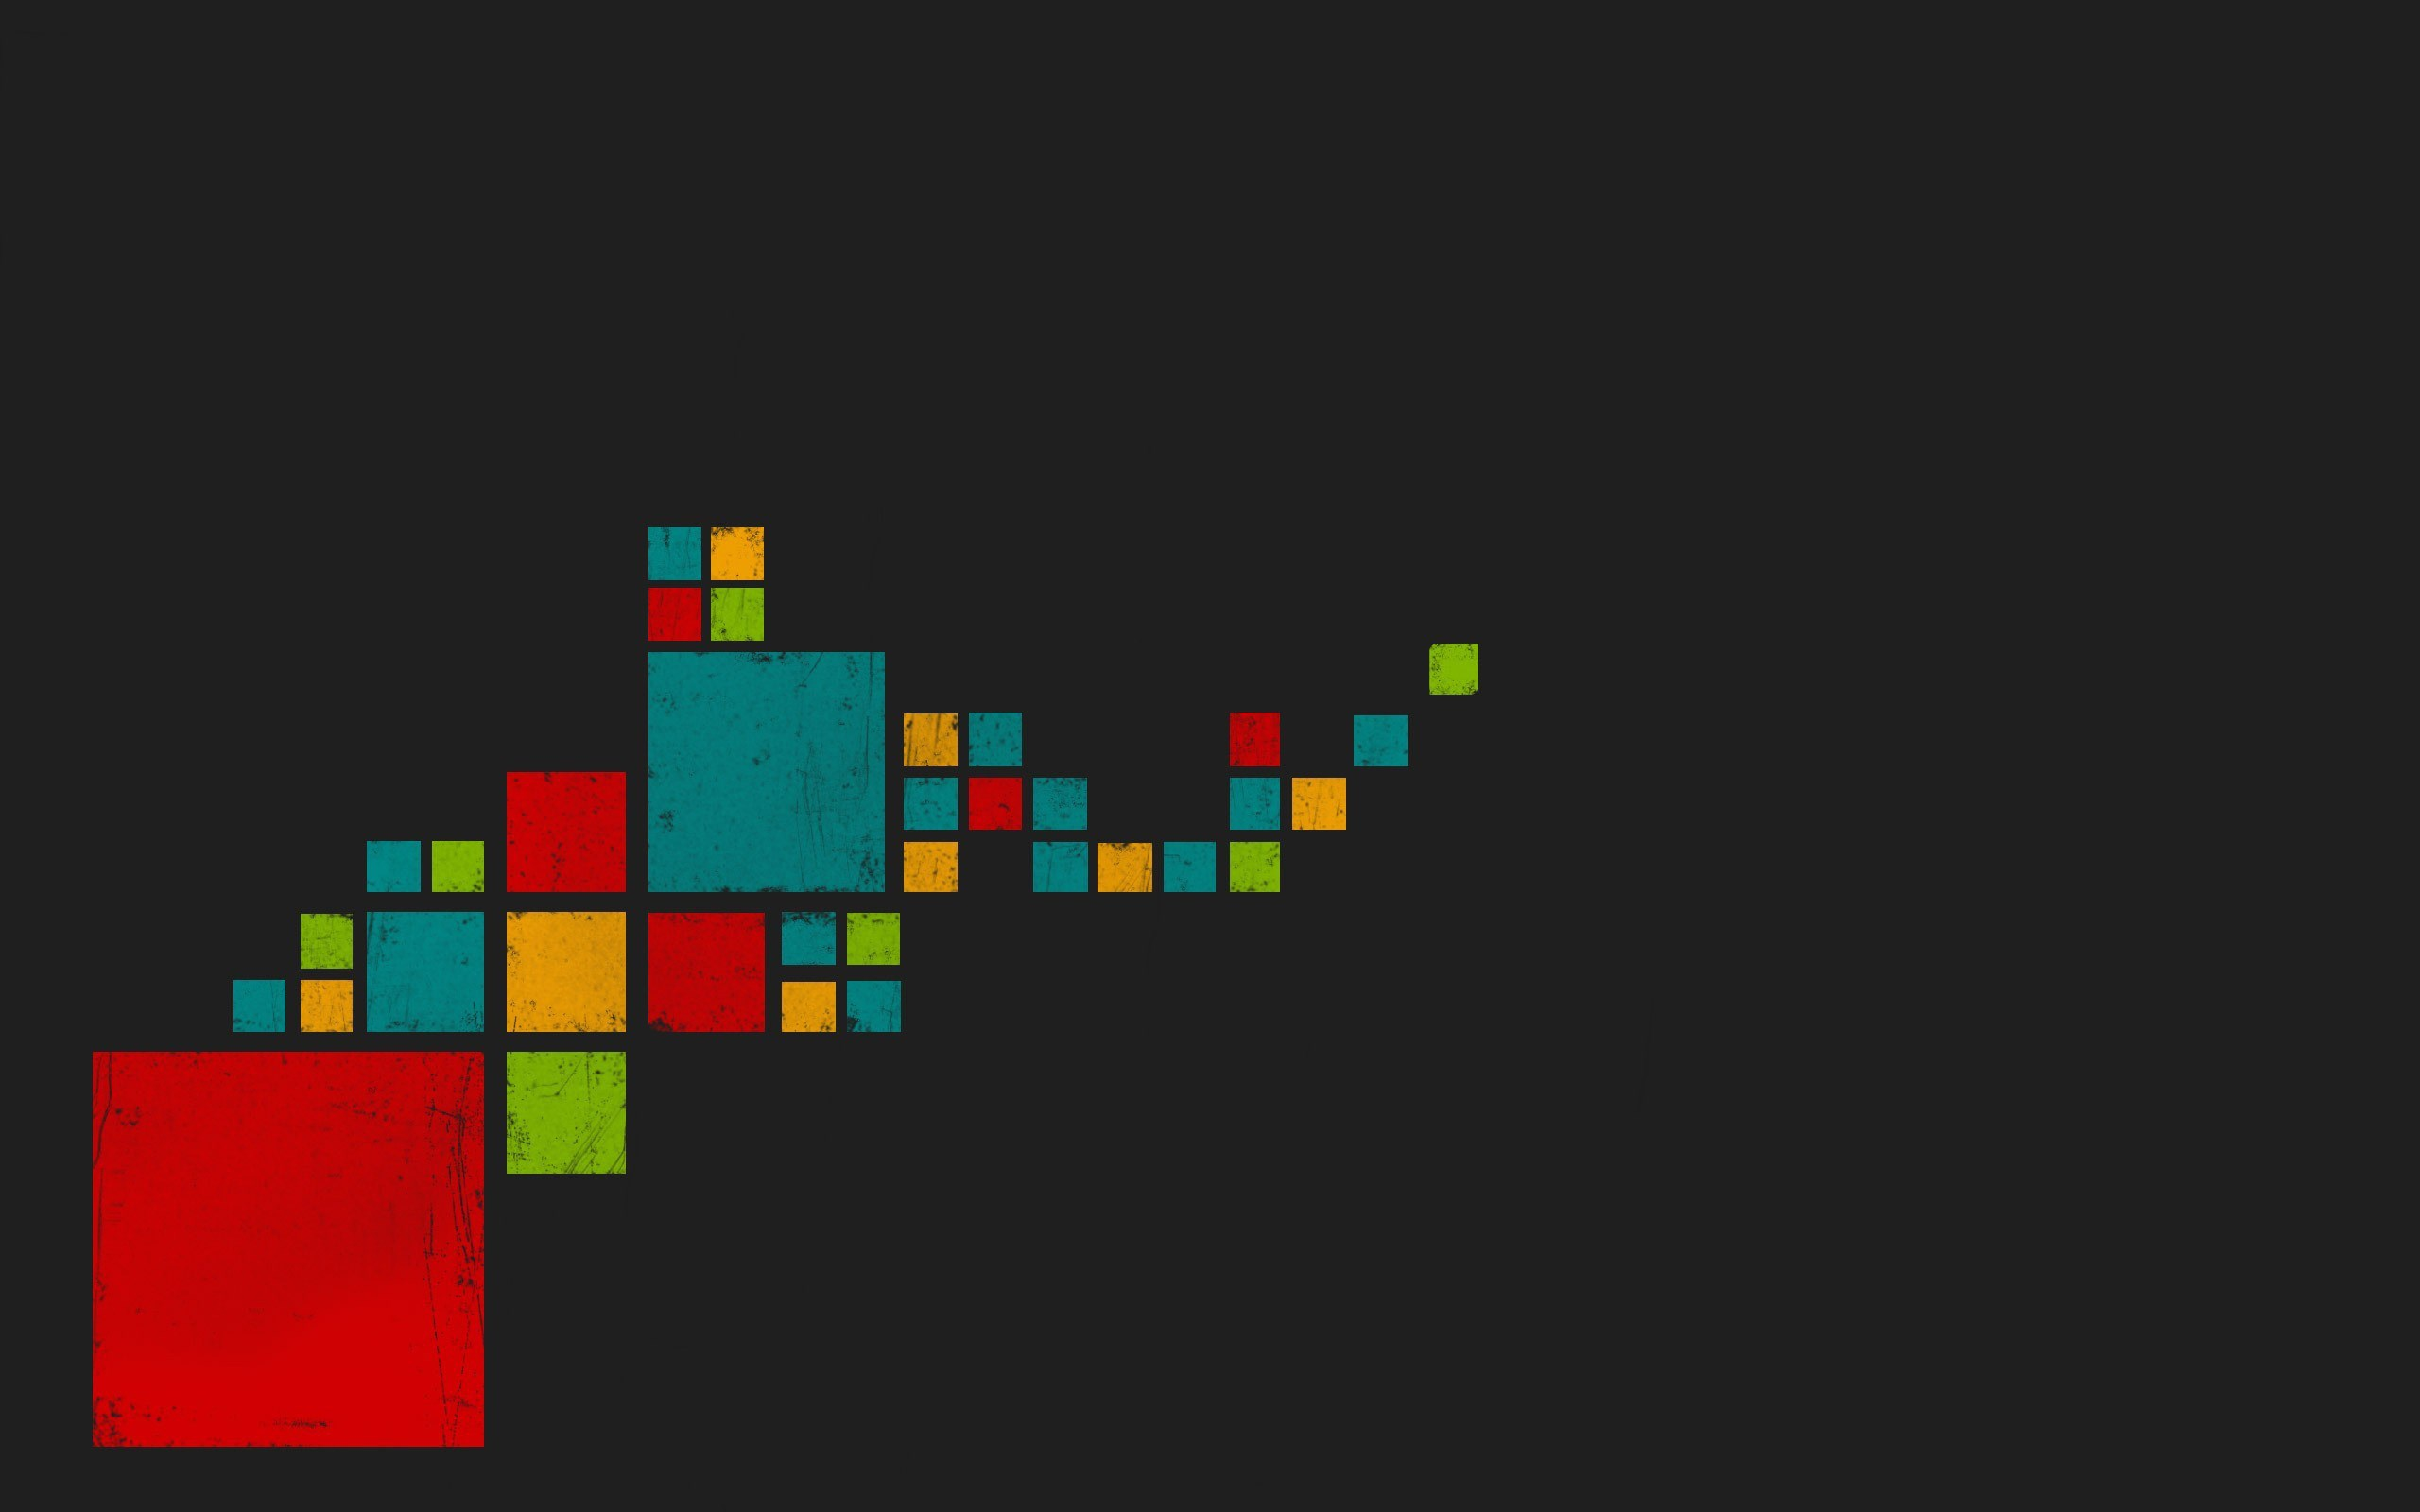 Squares Red Blue Green Yellow Gray Art